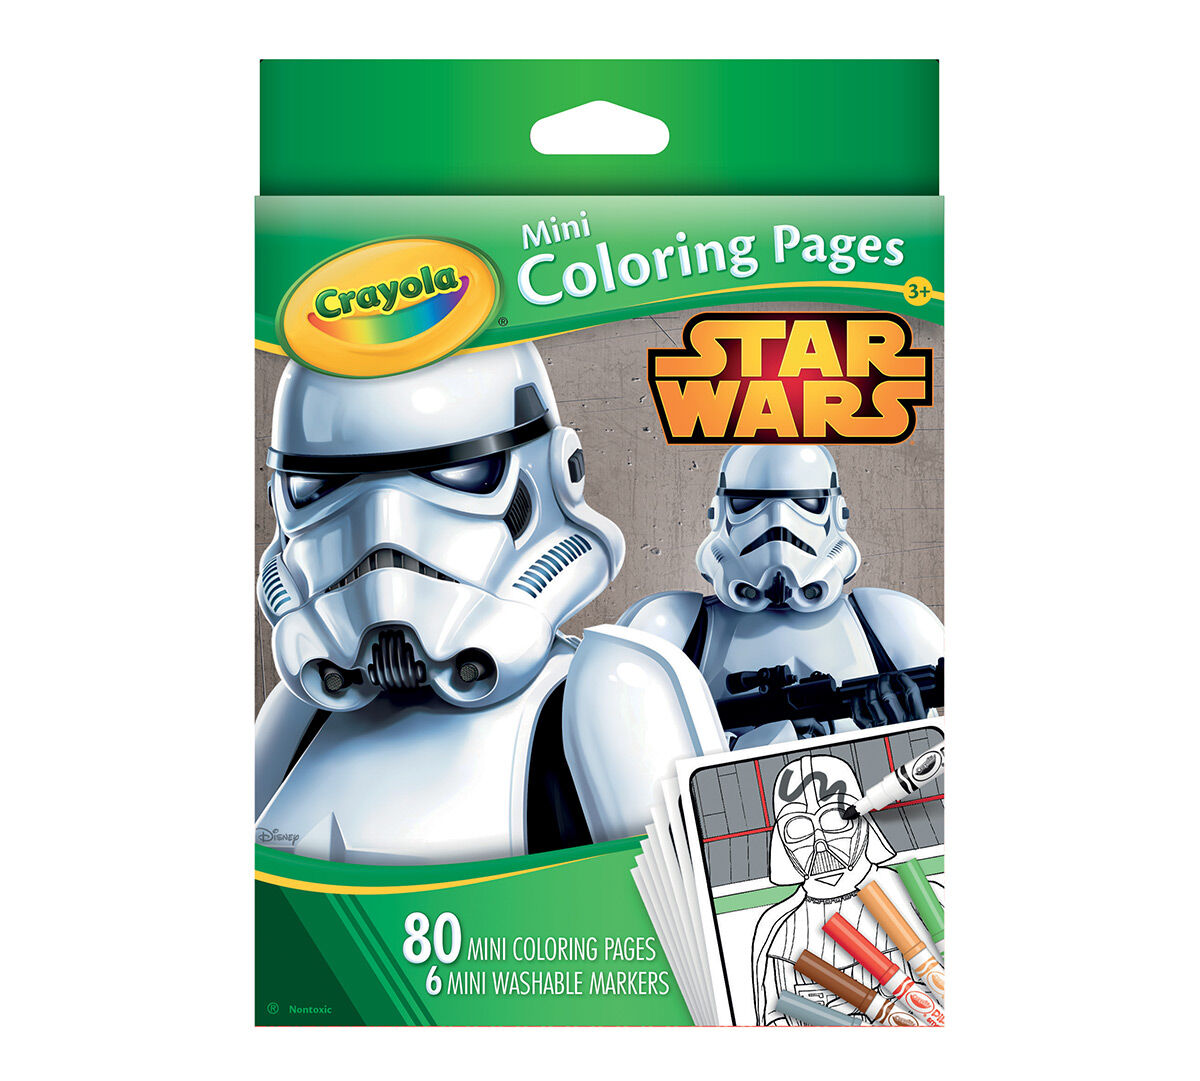 Crayola Mini Coloring Pages – Star Wars